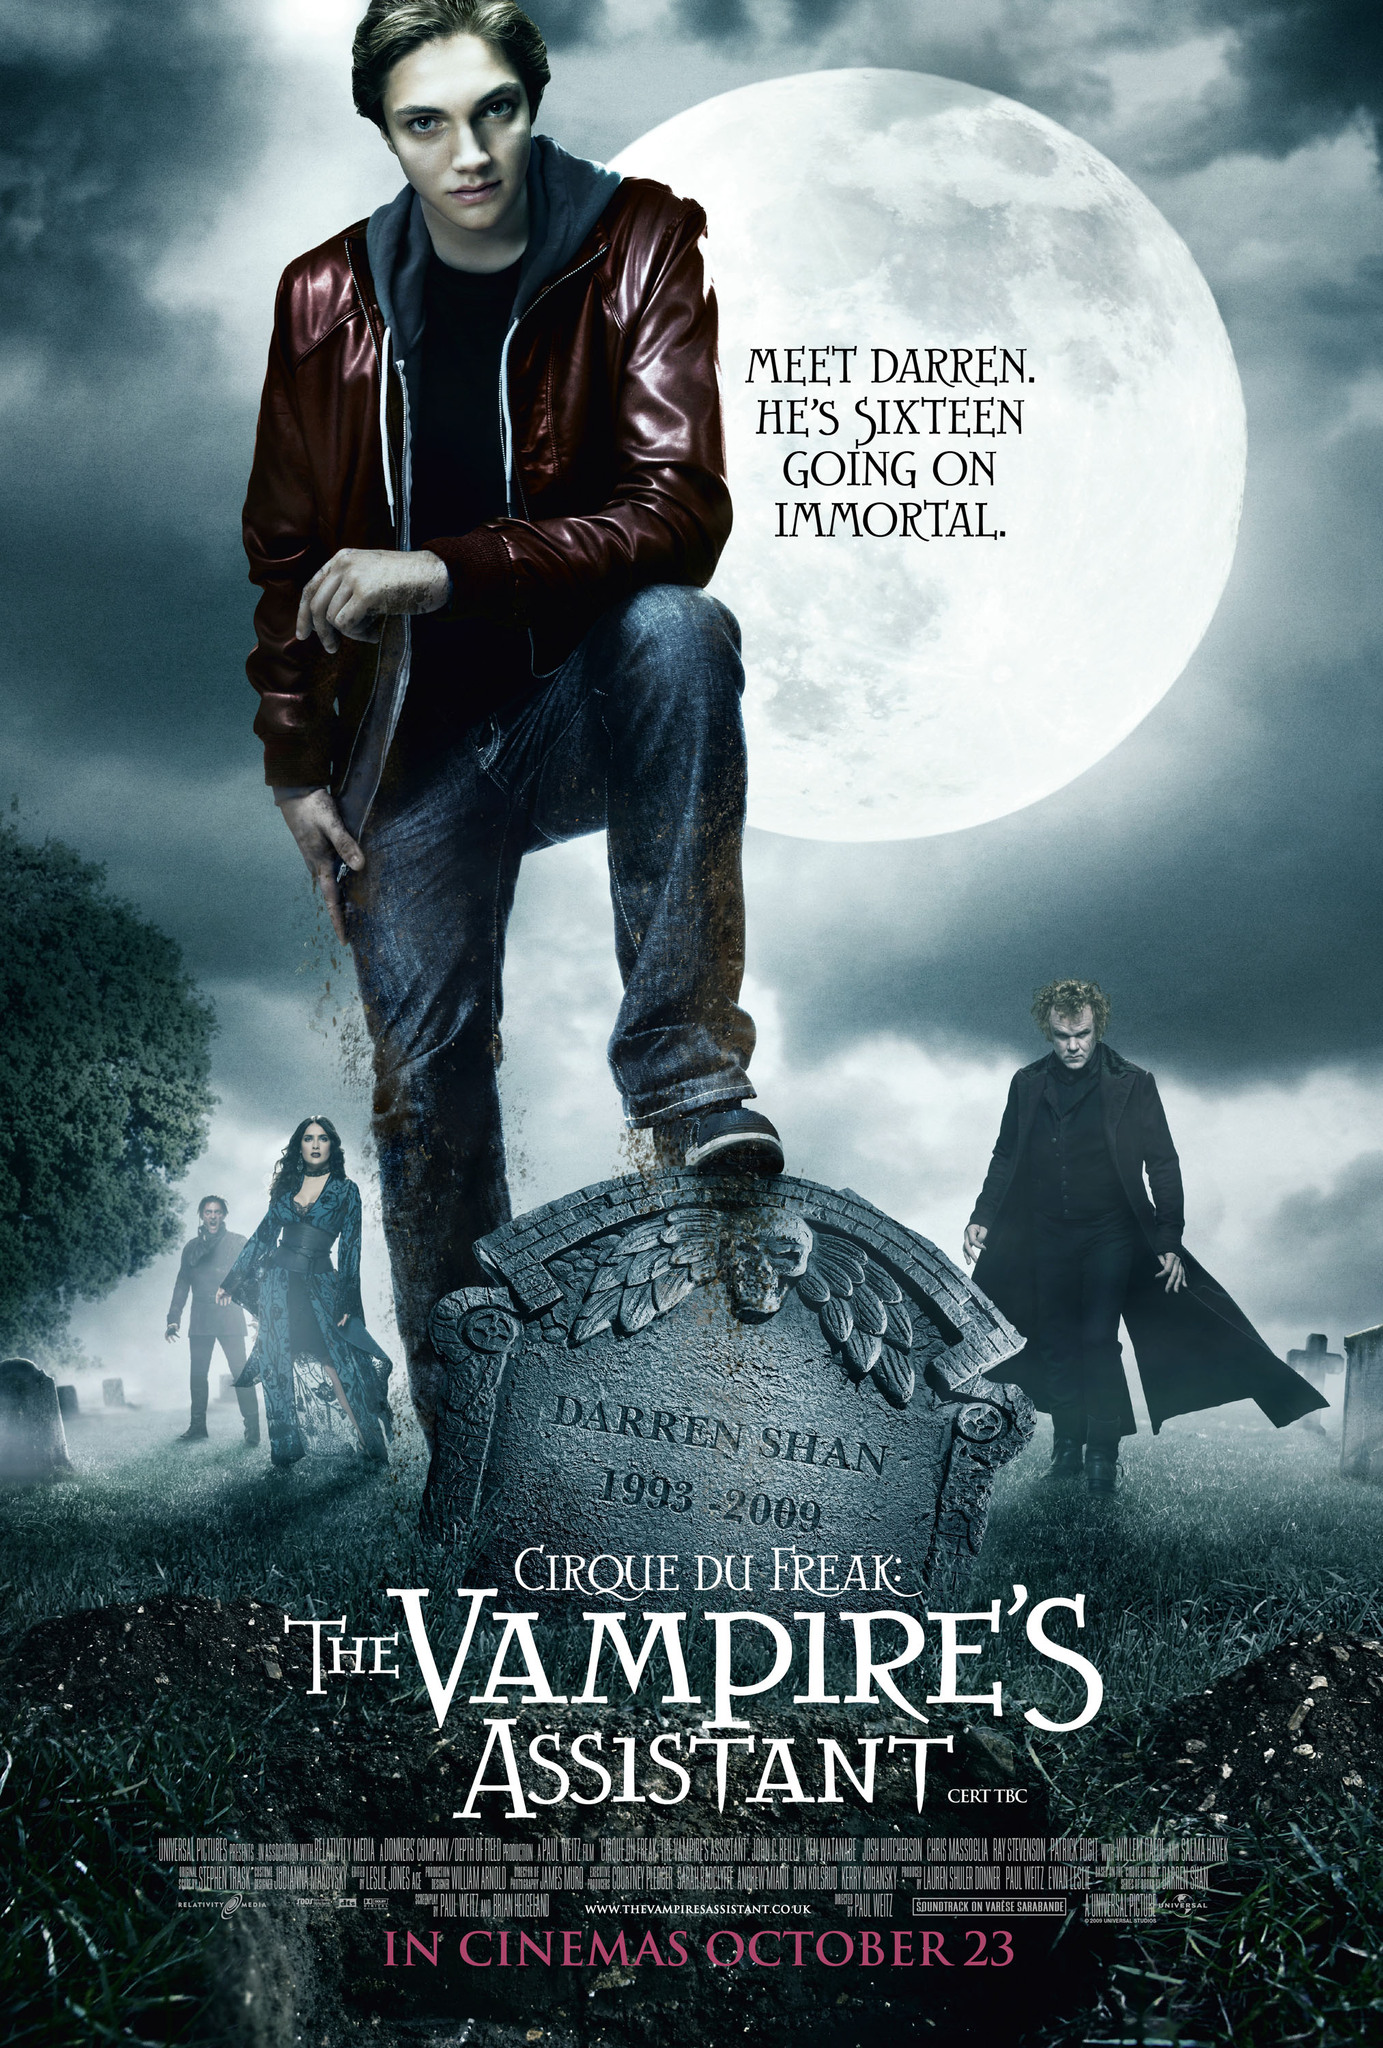 Cirque du Freak: The Vampire's Assistant (2009) - IMDb